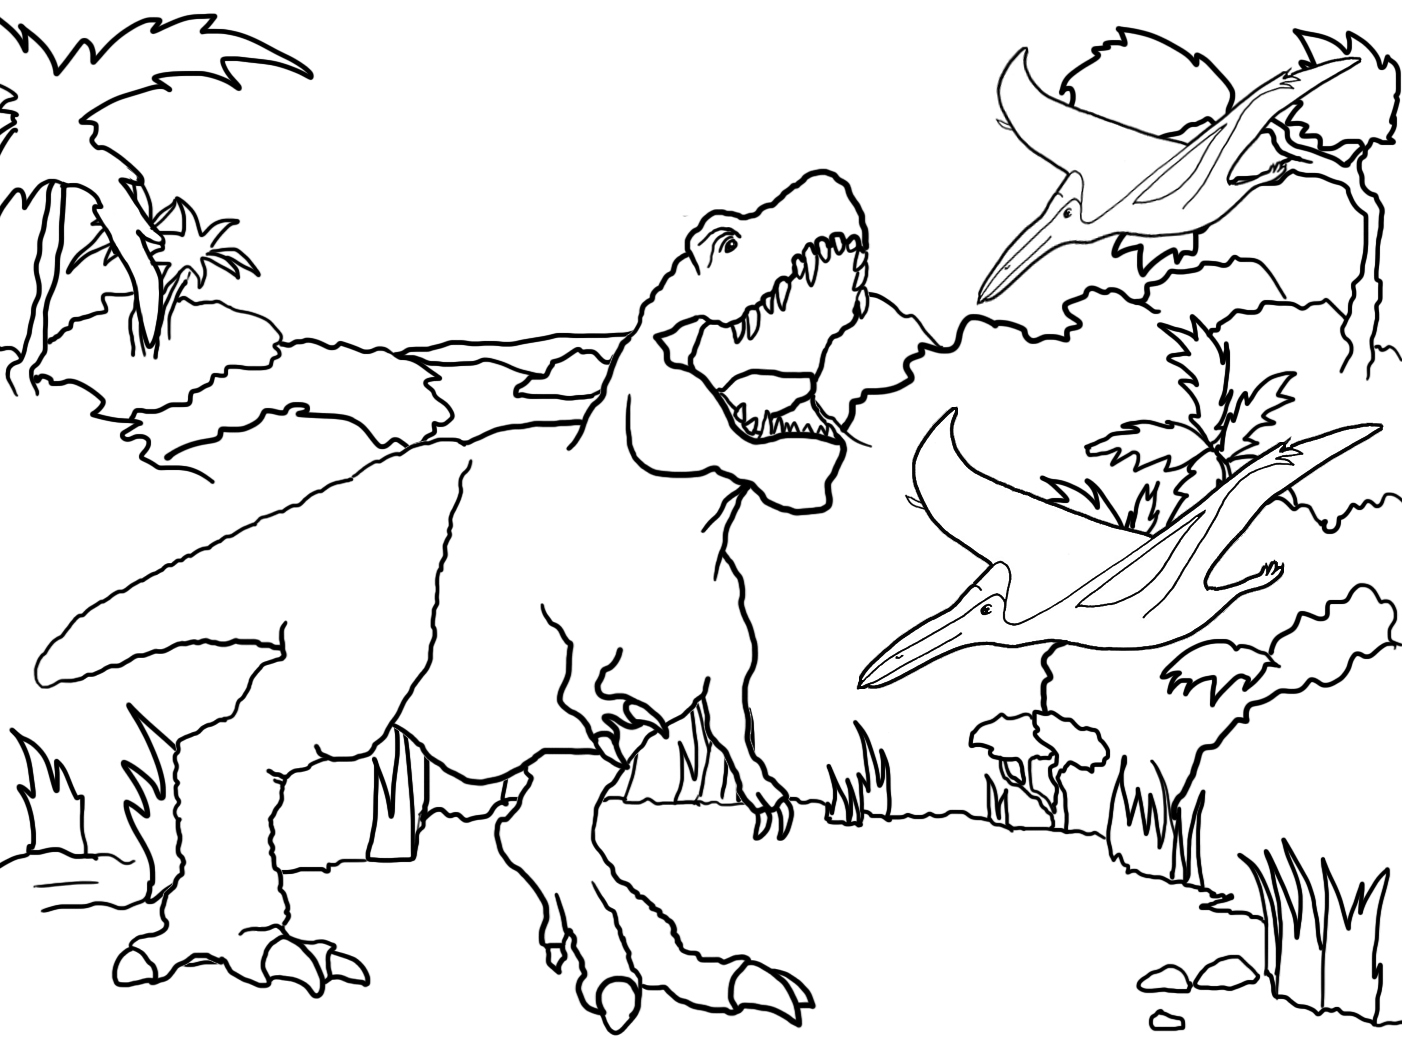 flying dinosaur coloring pages flying dinosaur coloring pages dinosaurs pictures and facts flying pages coloring dinosaur